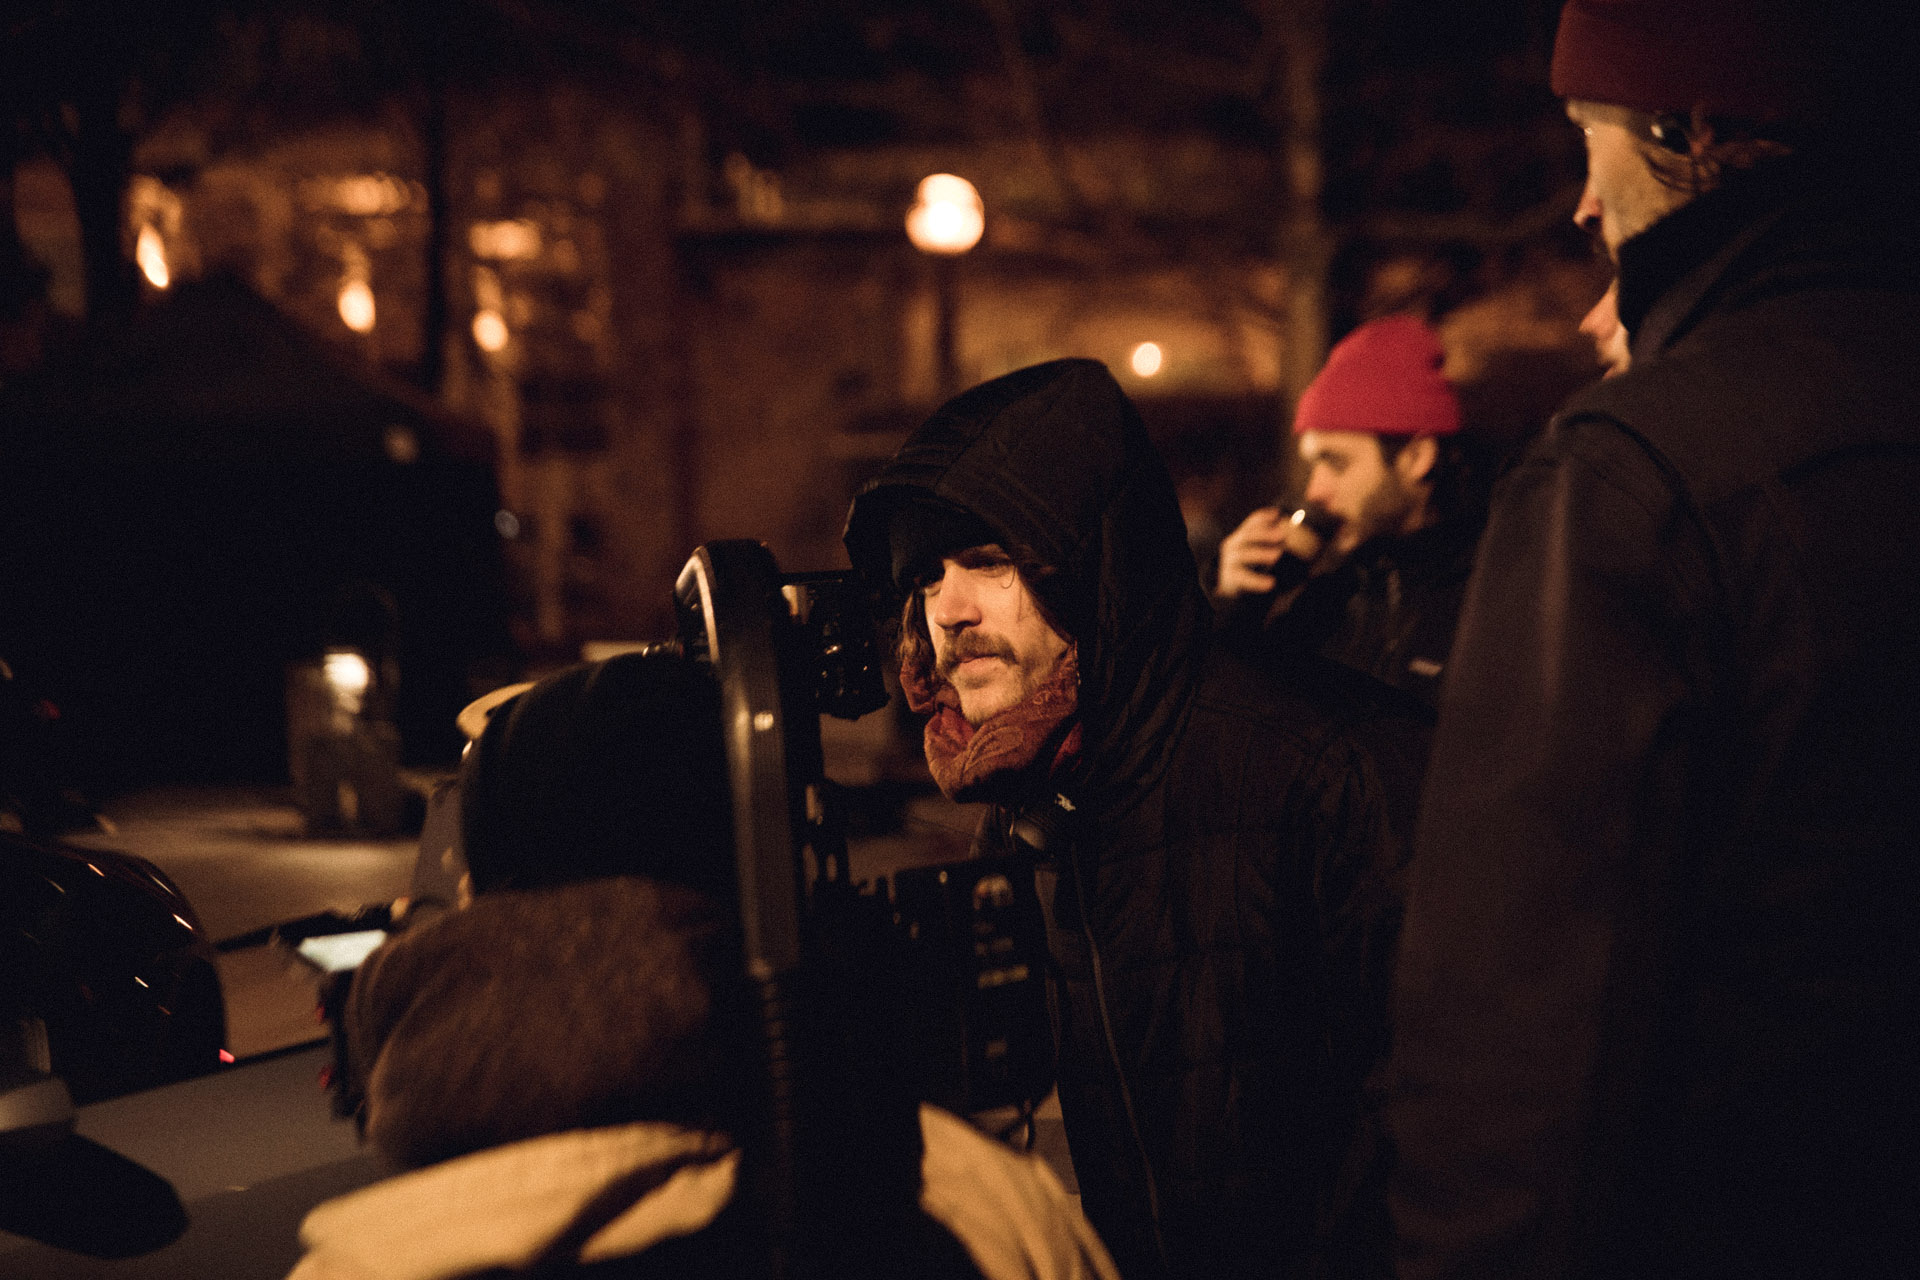 Vincent Ruel-Cote from Les Gamins behind the scenes filming TV series La Loi C'est La Loi at night with TV5 Unis